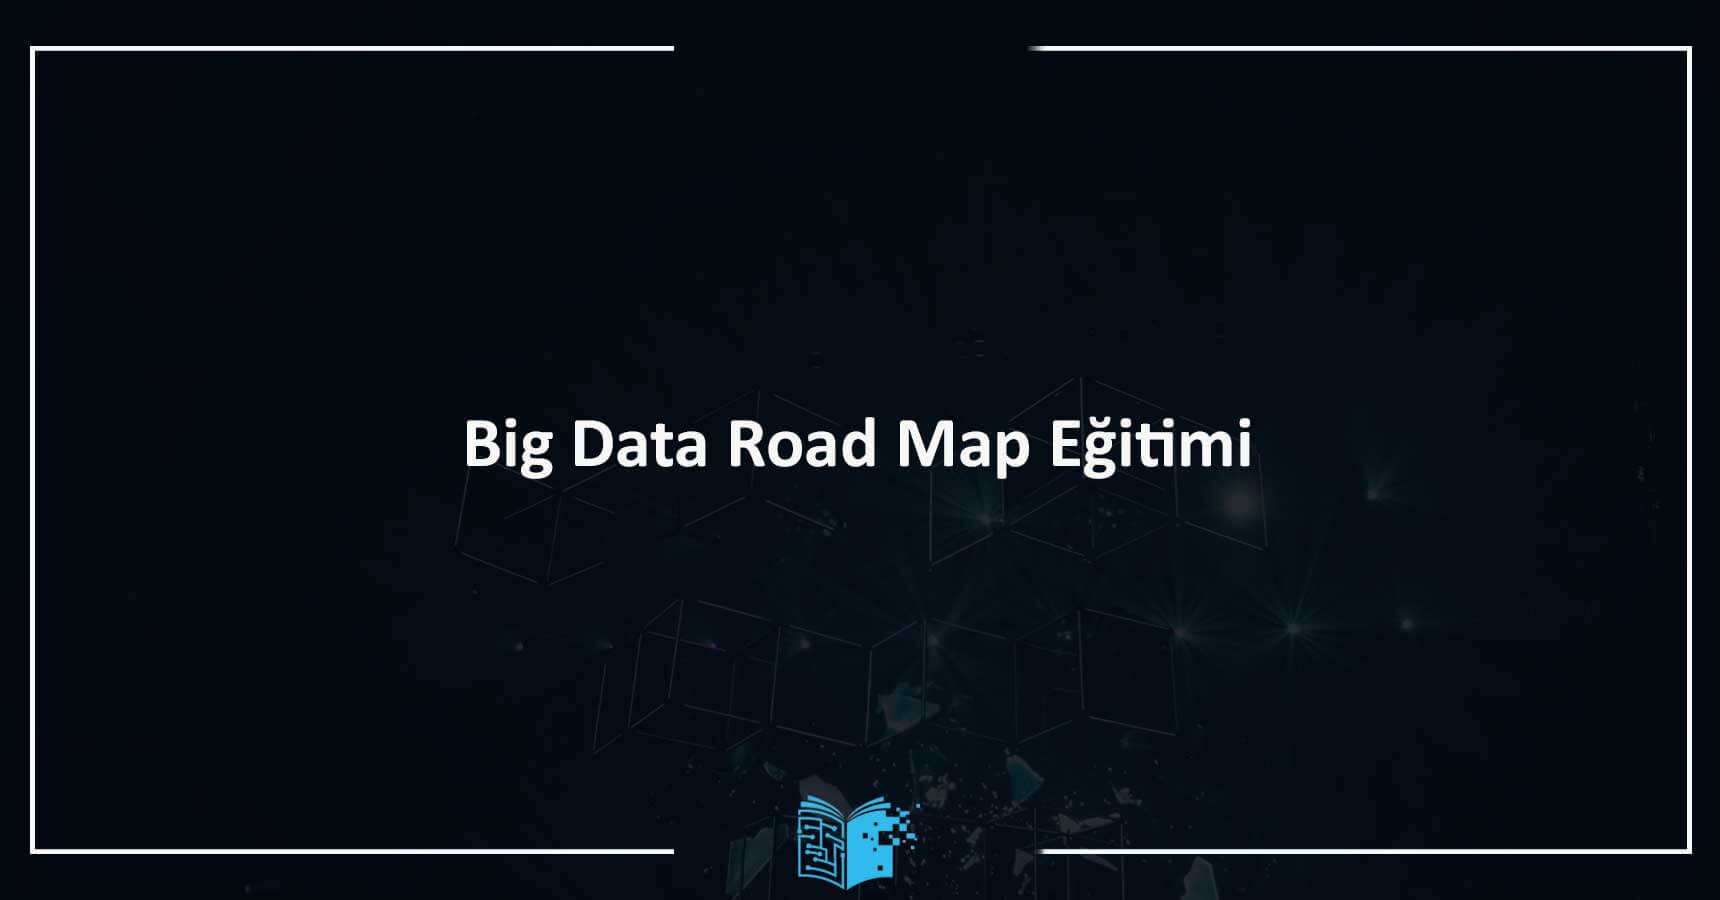 Big Data Road Map Eğitimi